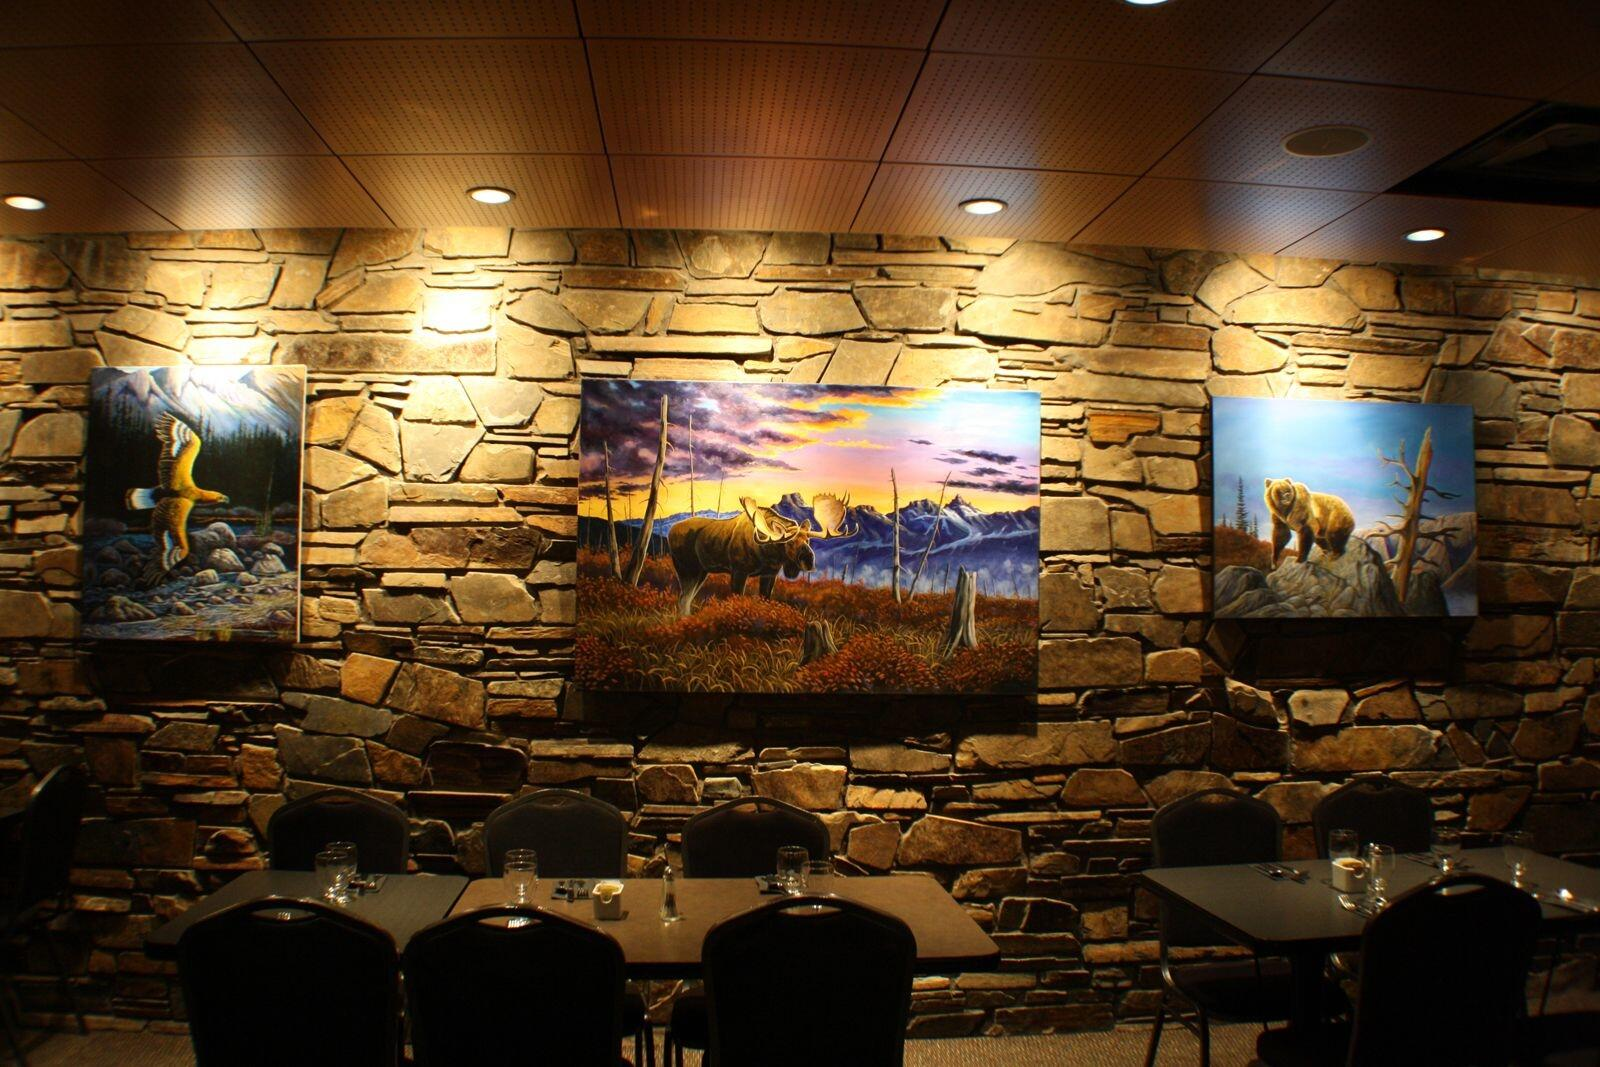 Artwork displayed in restaurant